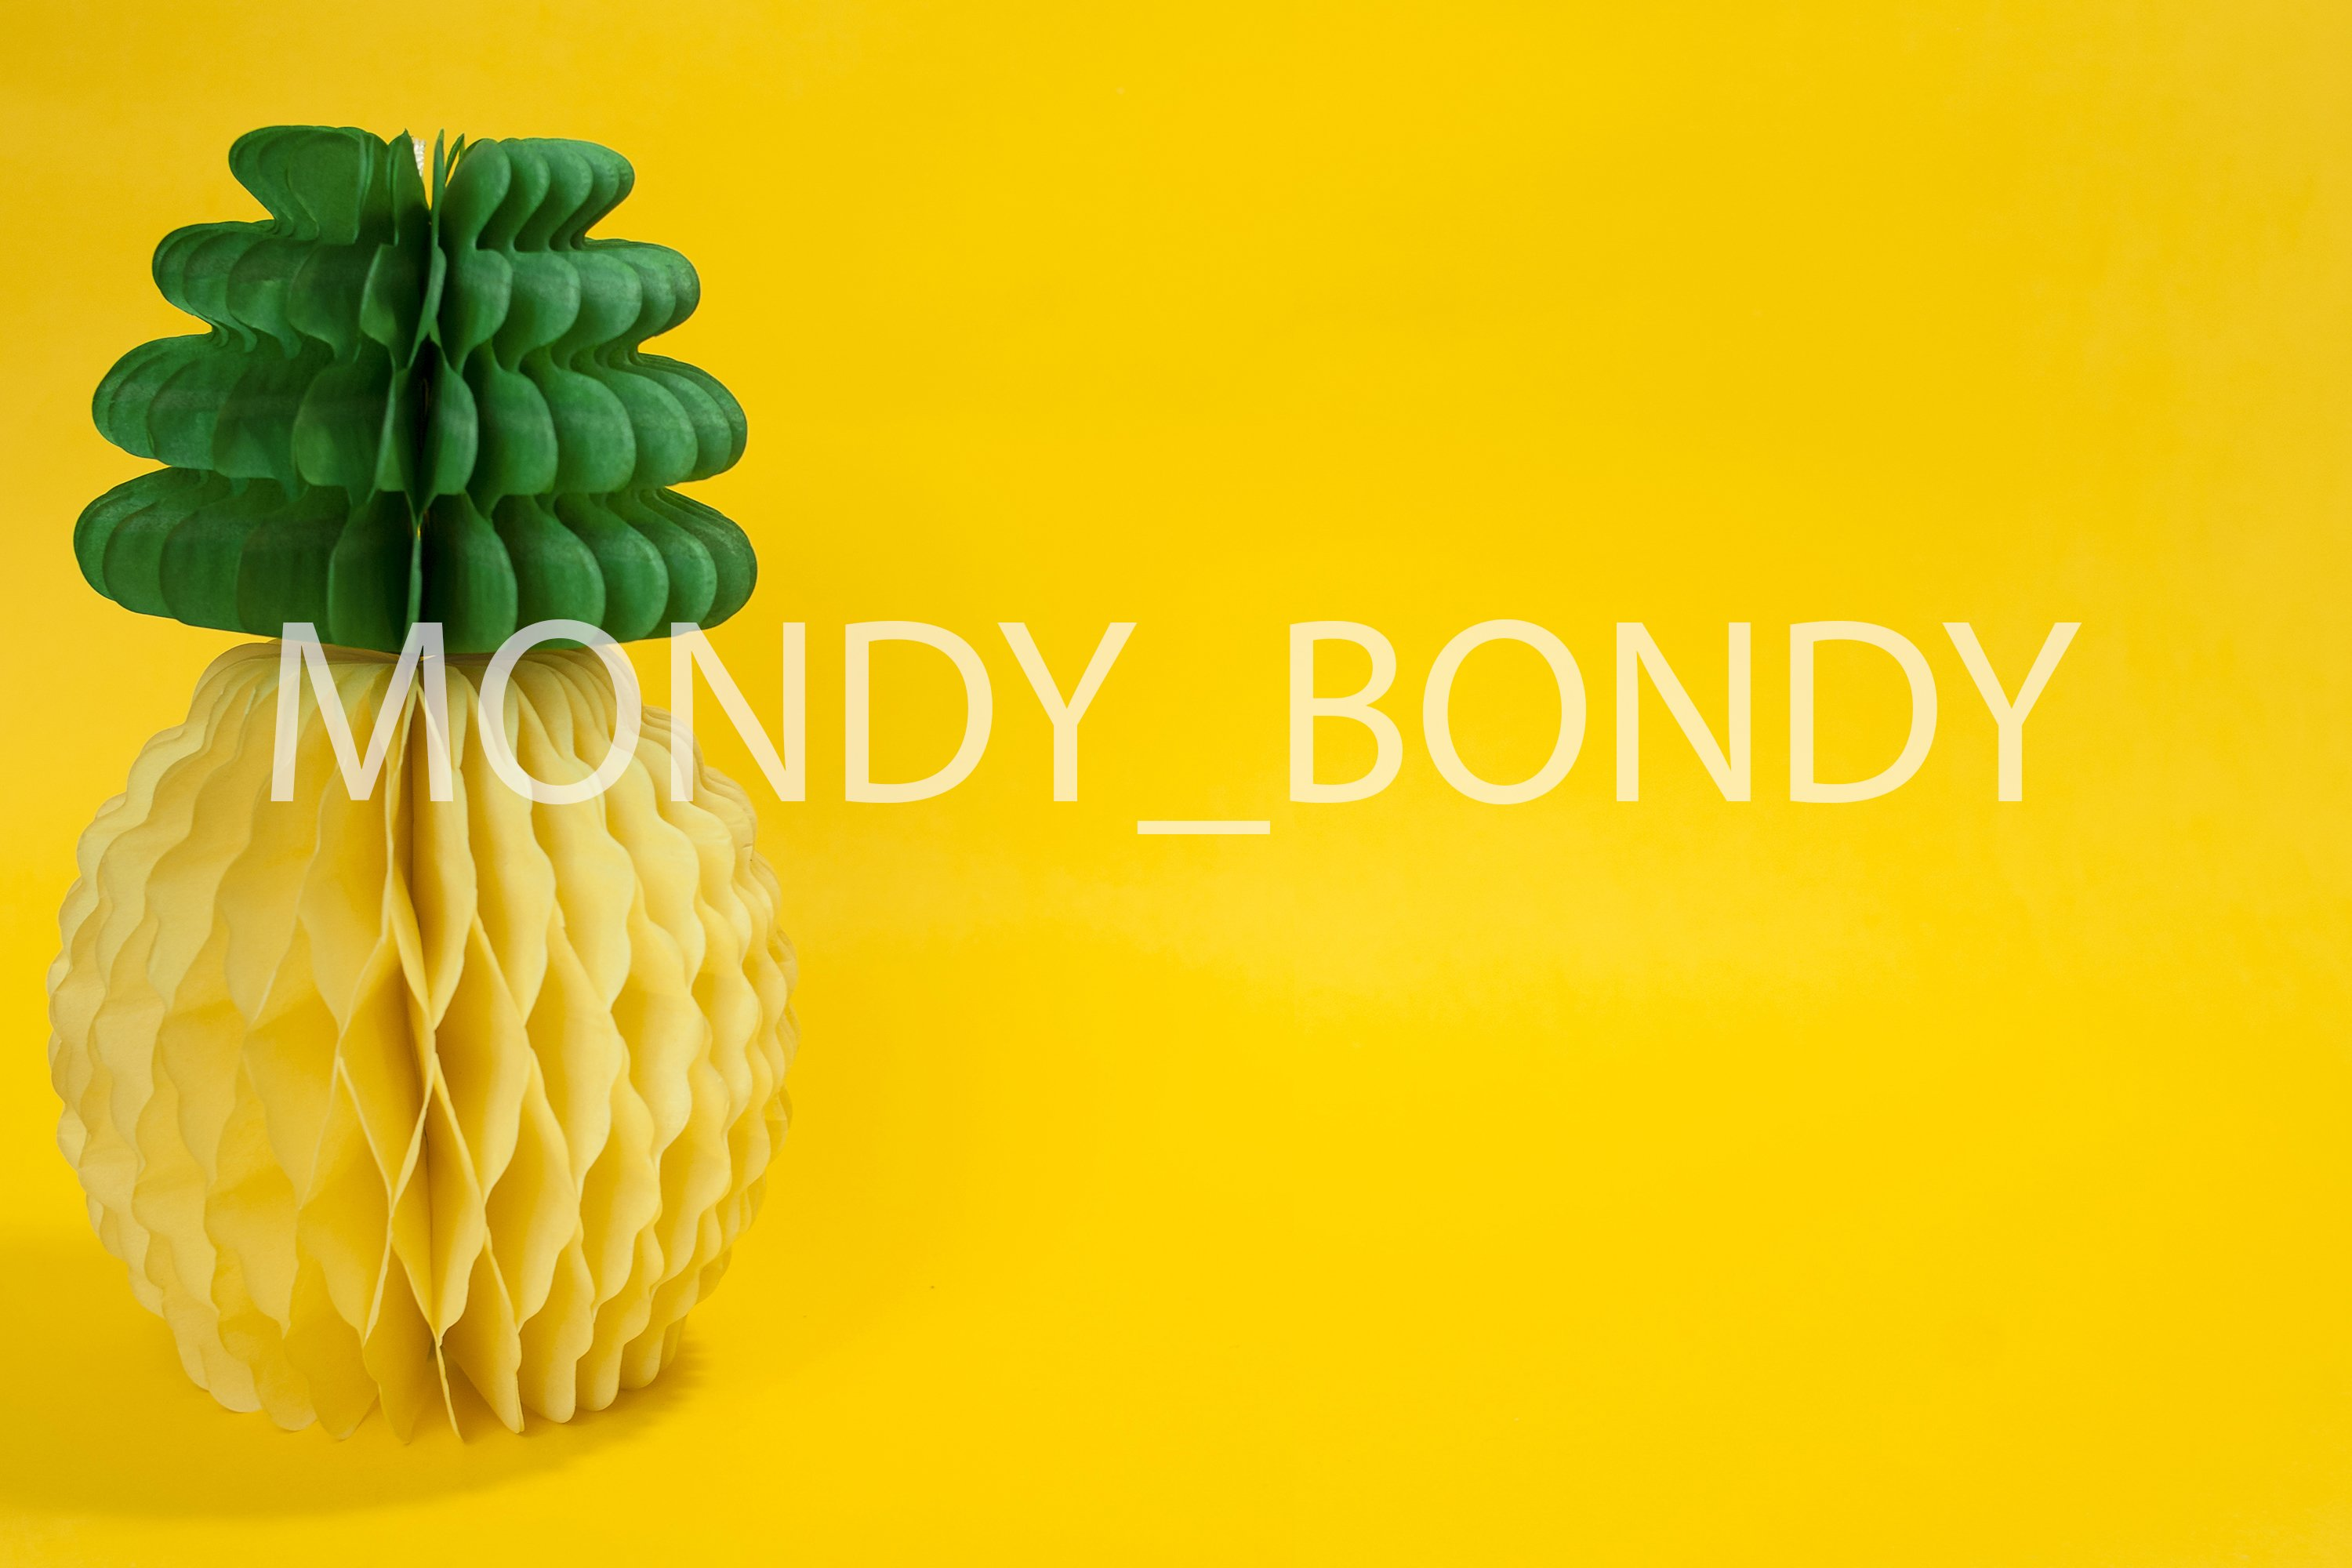 Paper pineapple on a yellow background example image 1